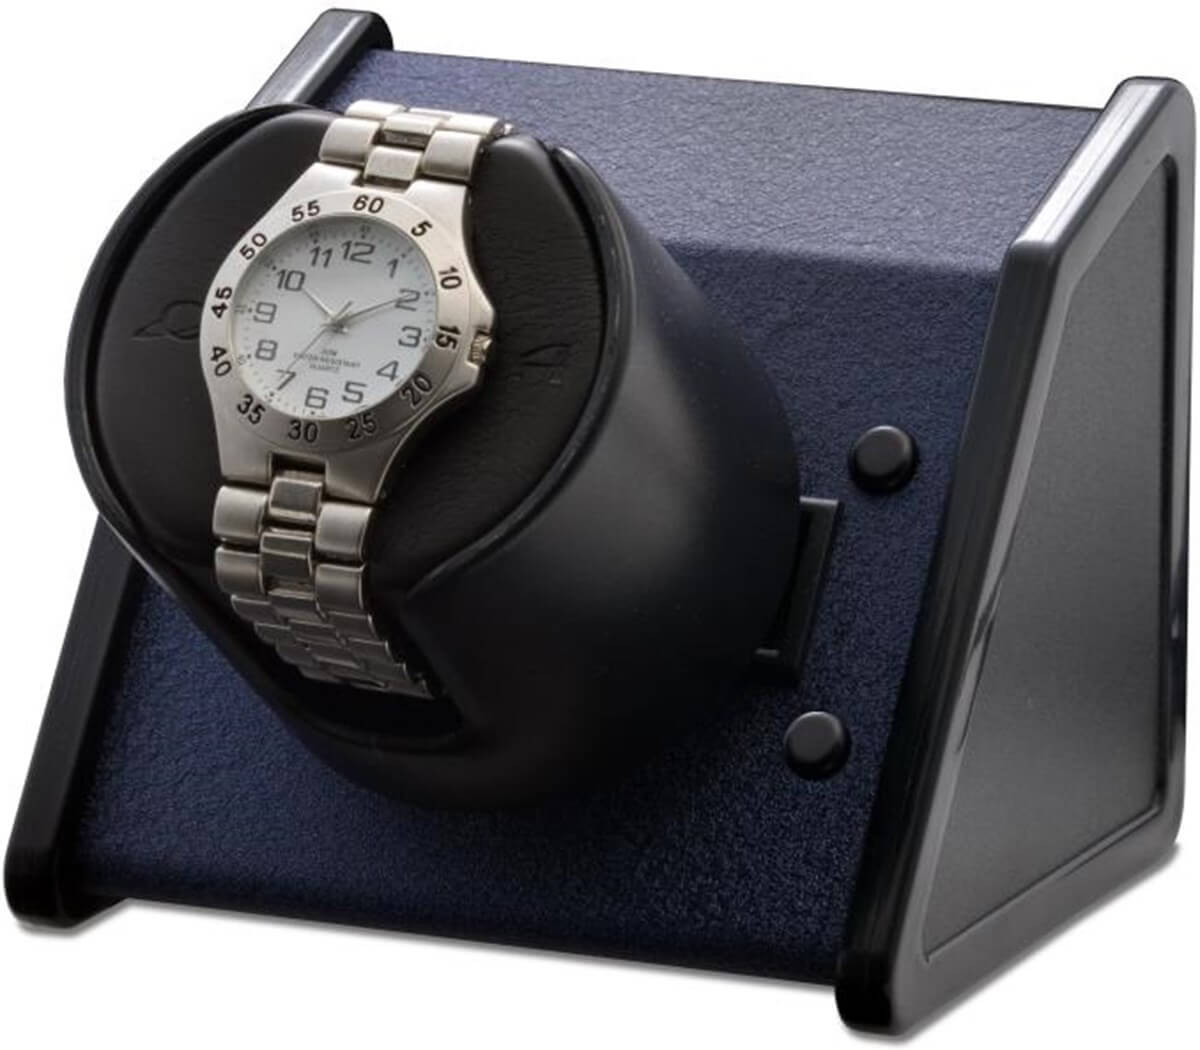 Orbita Sparta Bold 1 watch winder